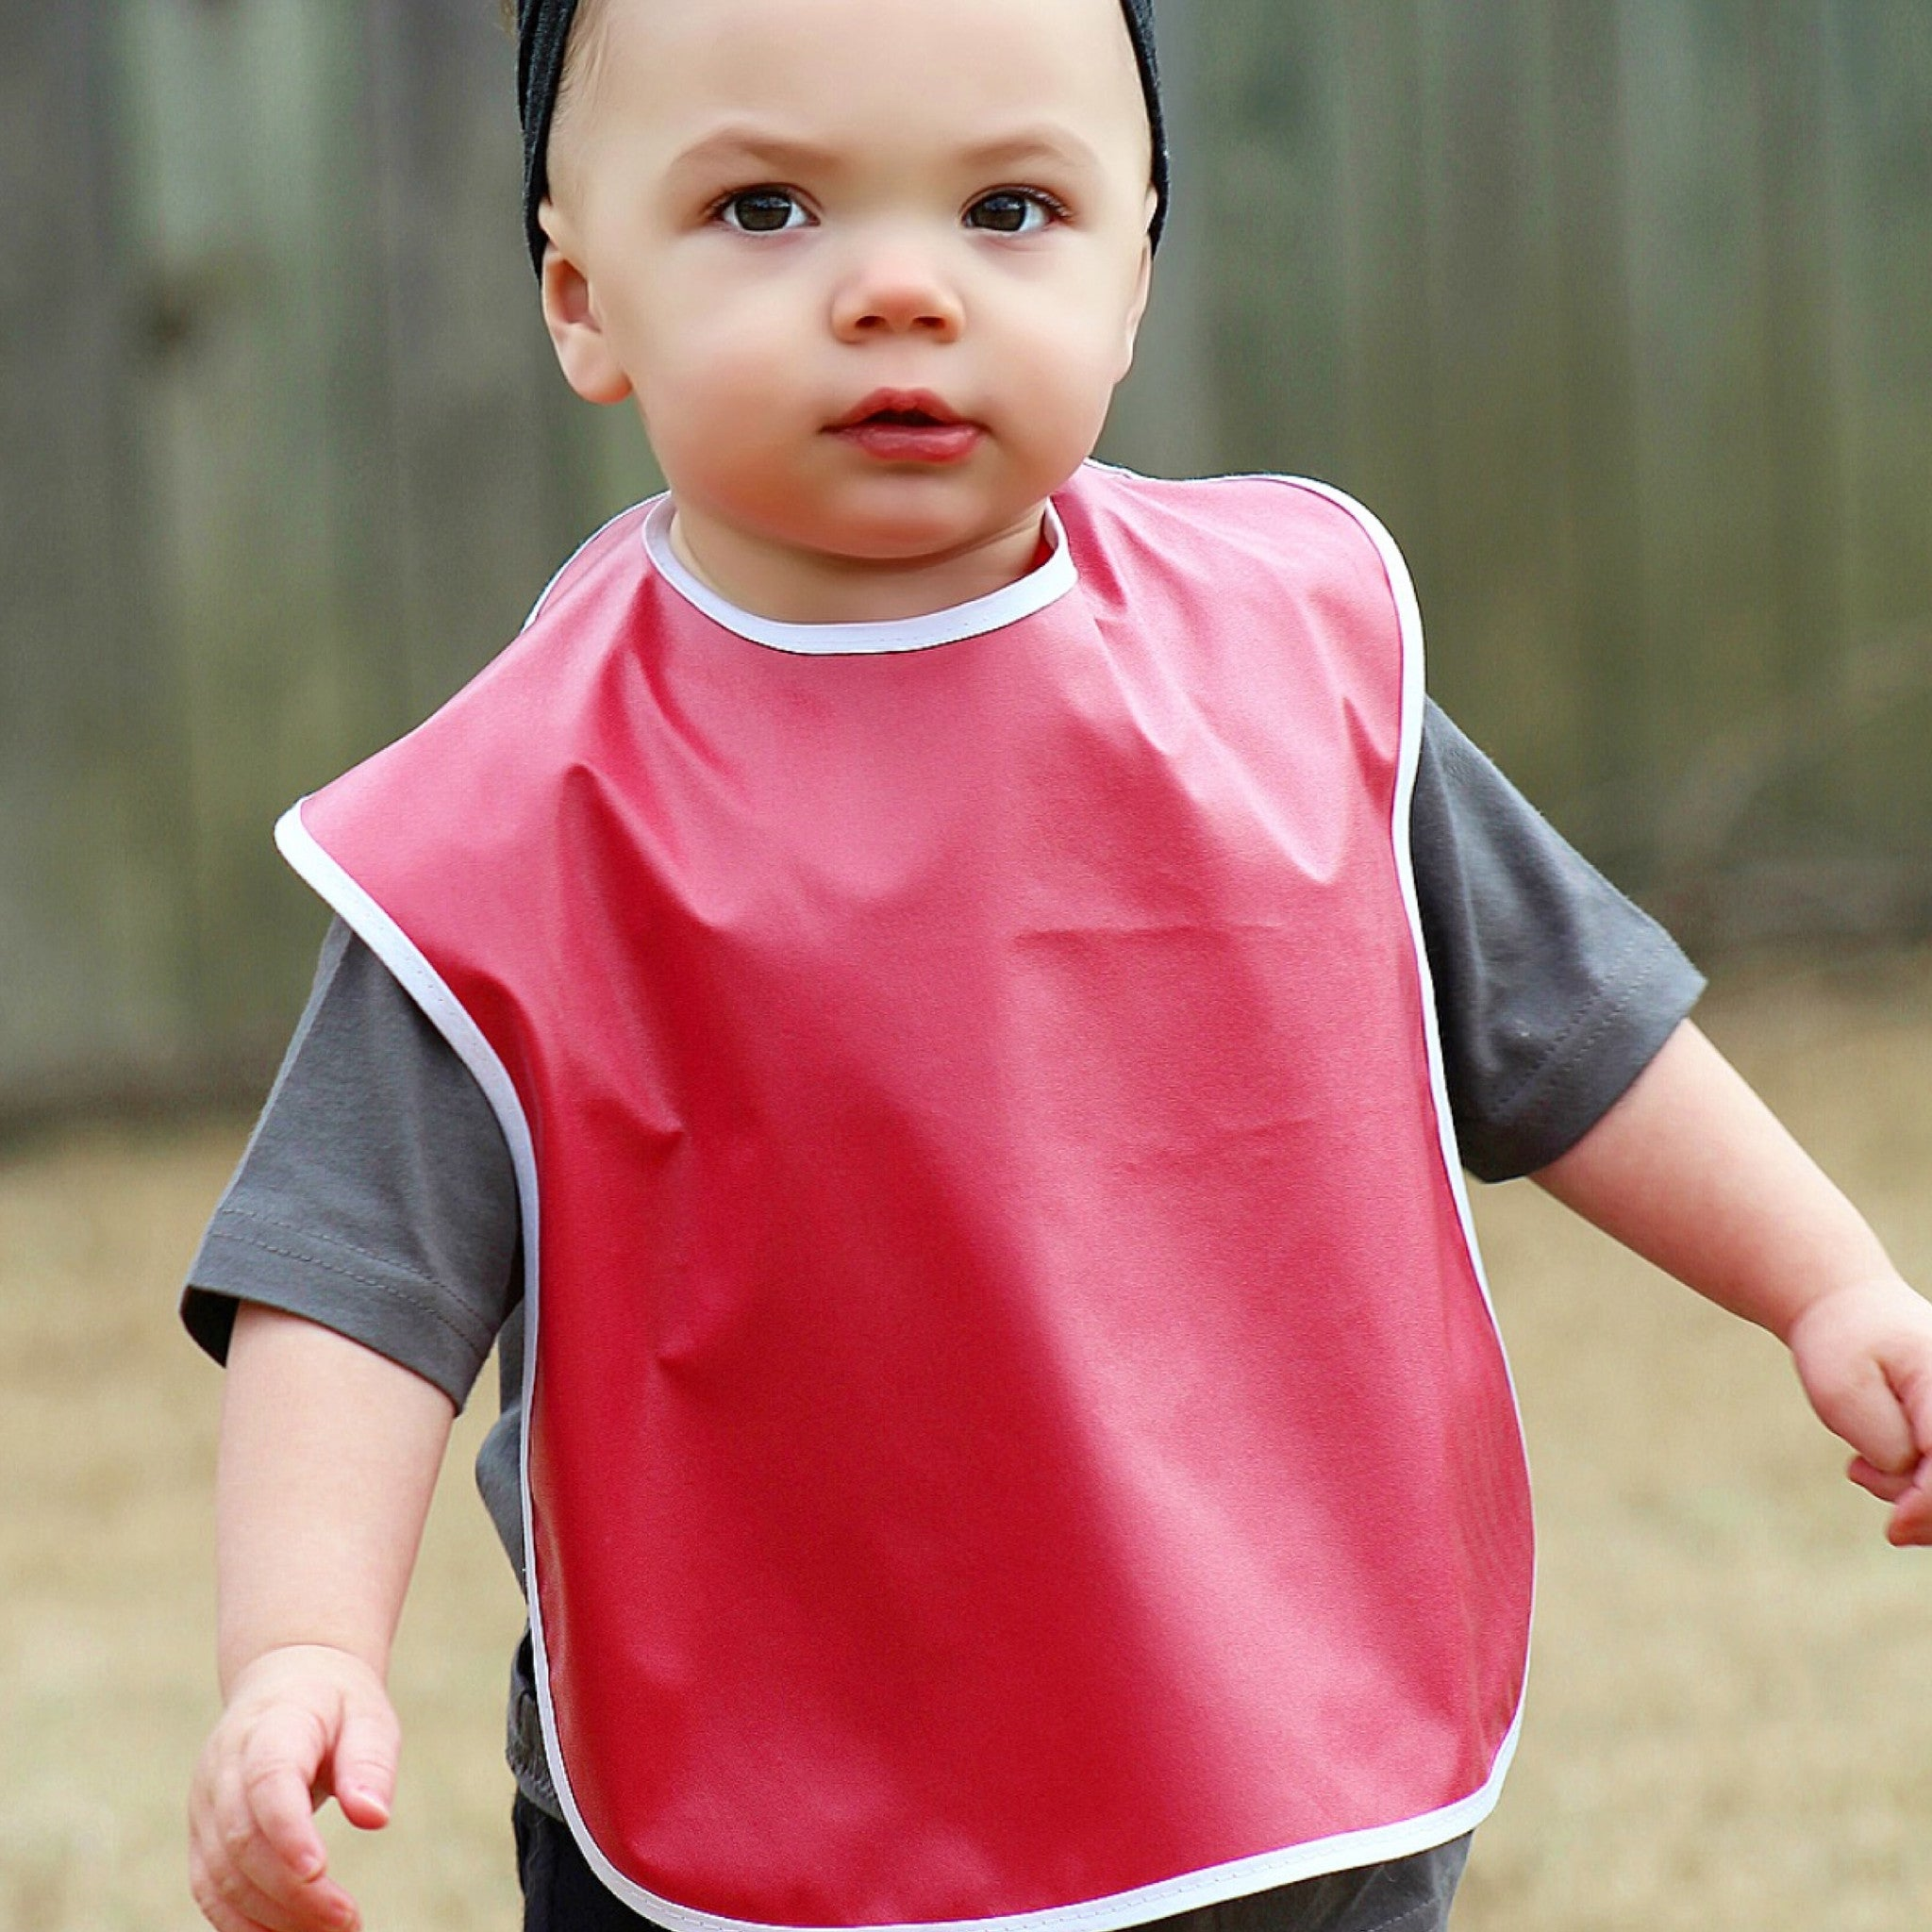 ecb91d57b3bf3 Wholesale Waterproof Bibs in Bulk for Toddlers with Snap Buttons